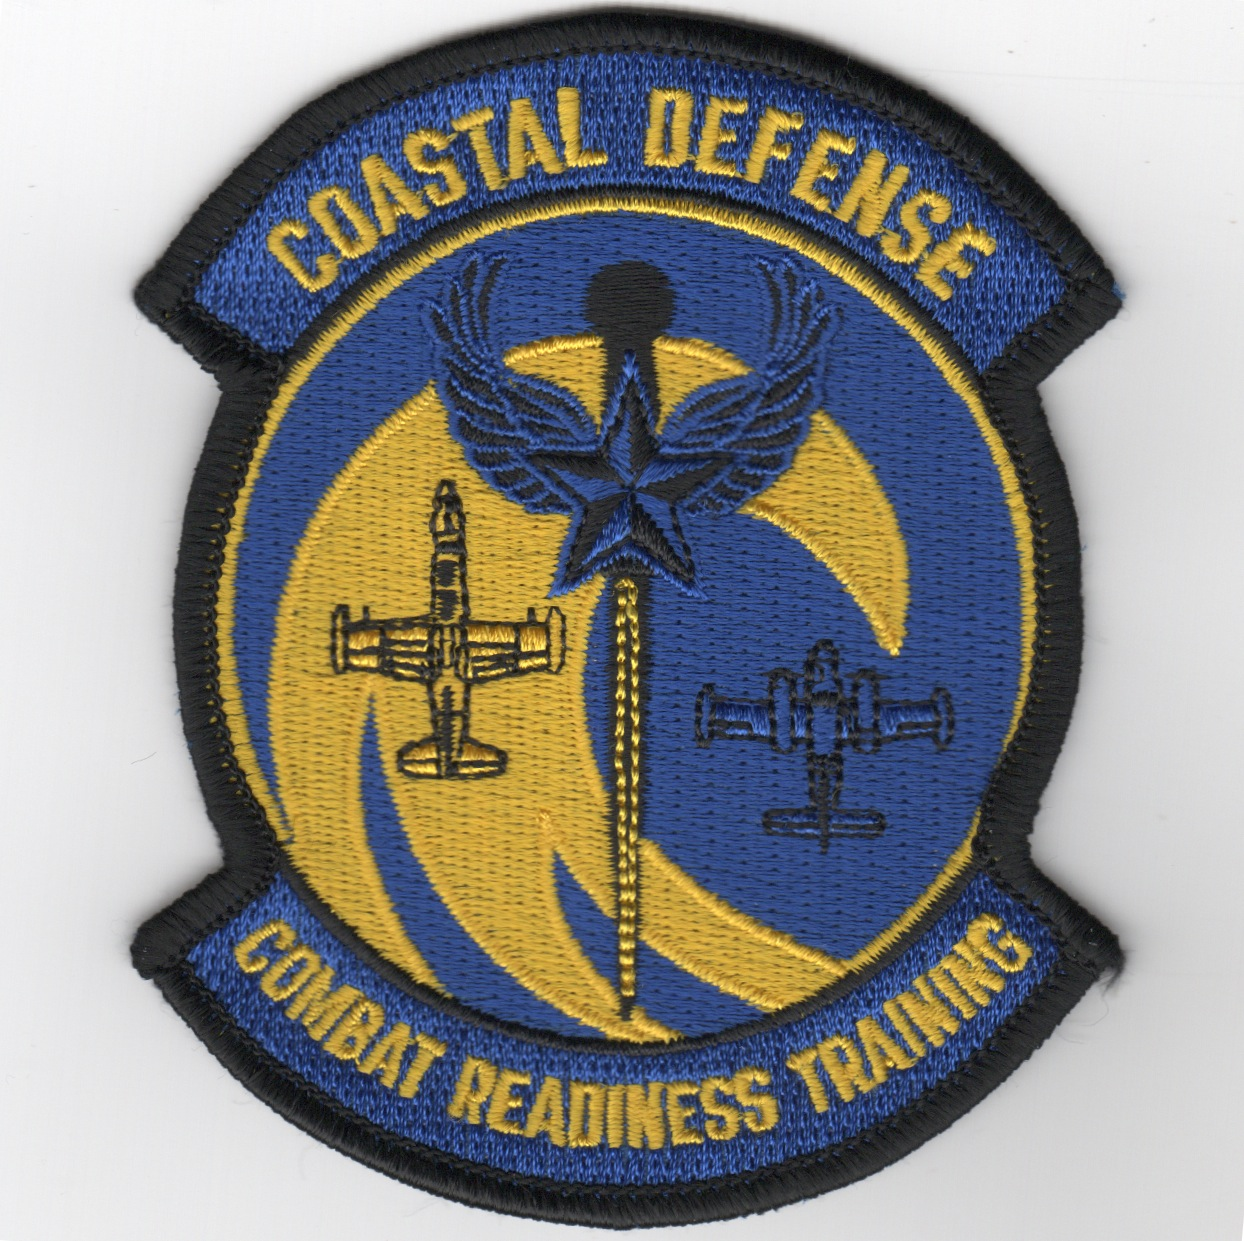 ISR/SUAS 'Coastal Defense' Patch